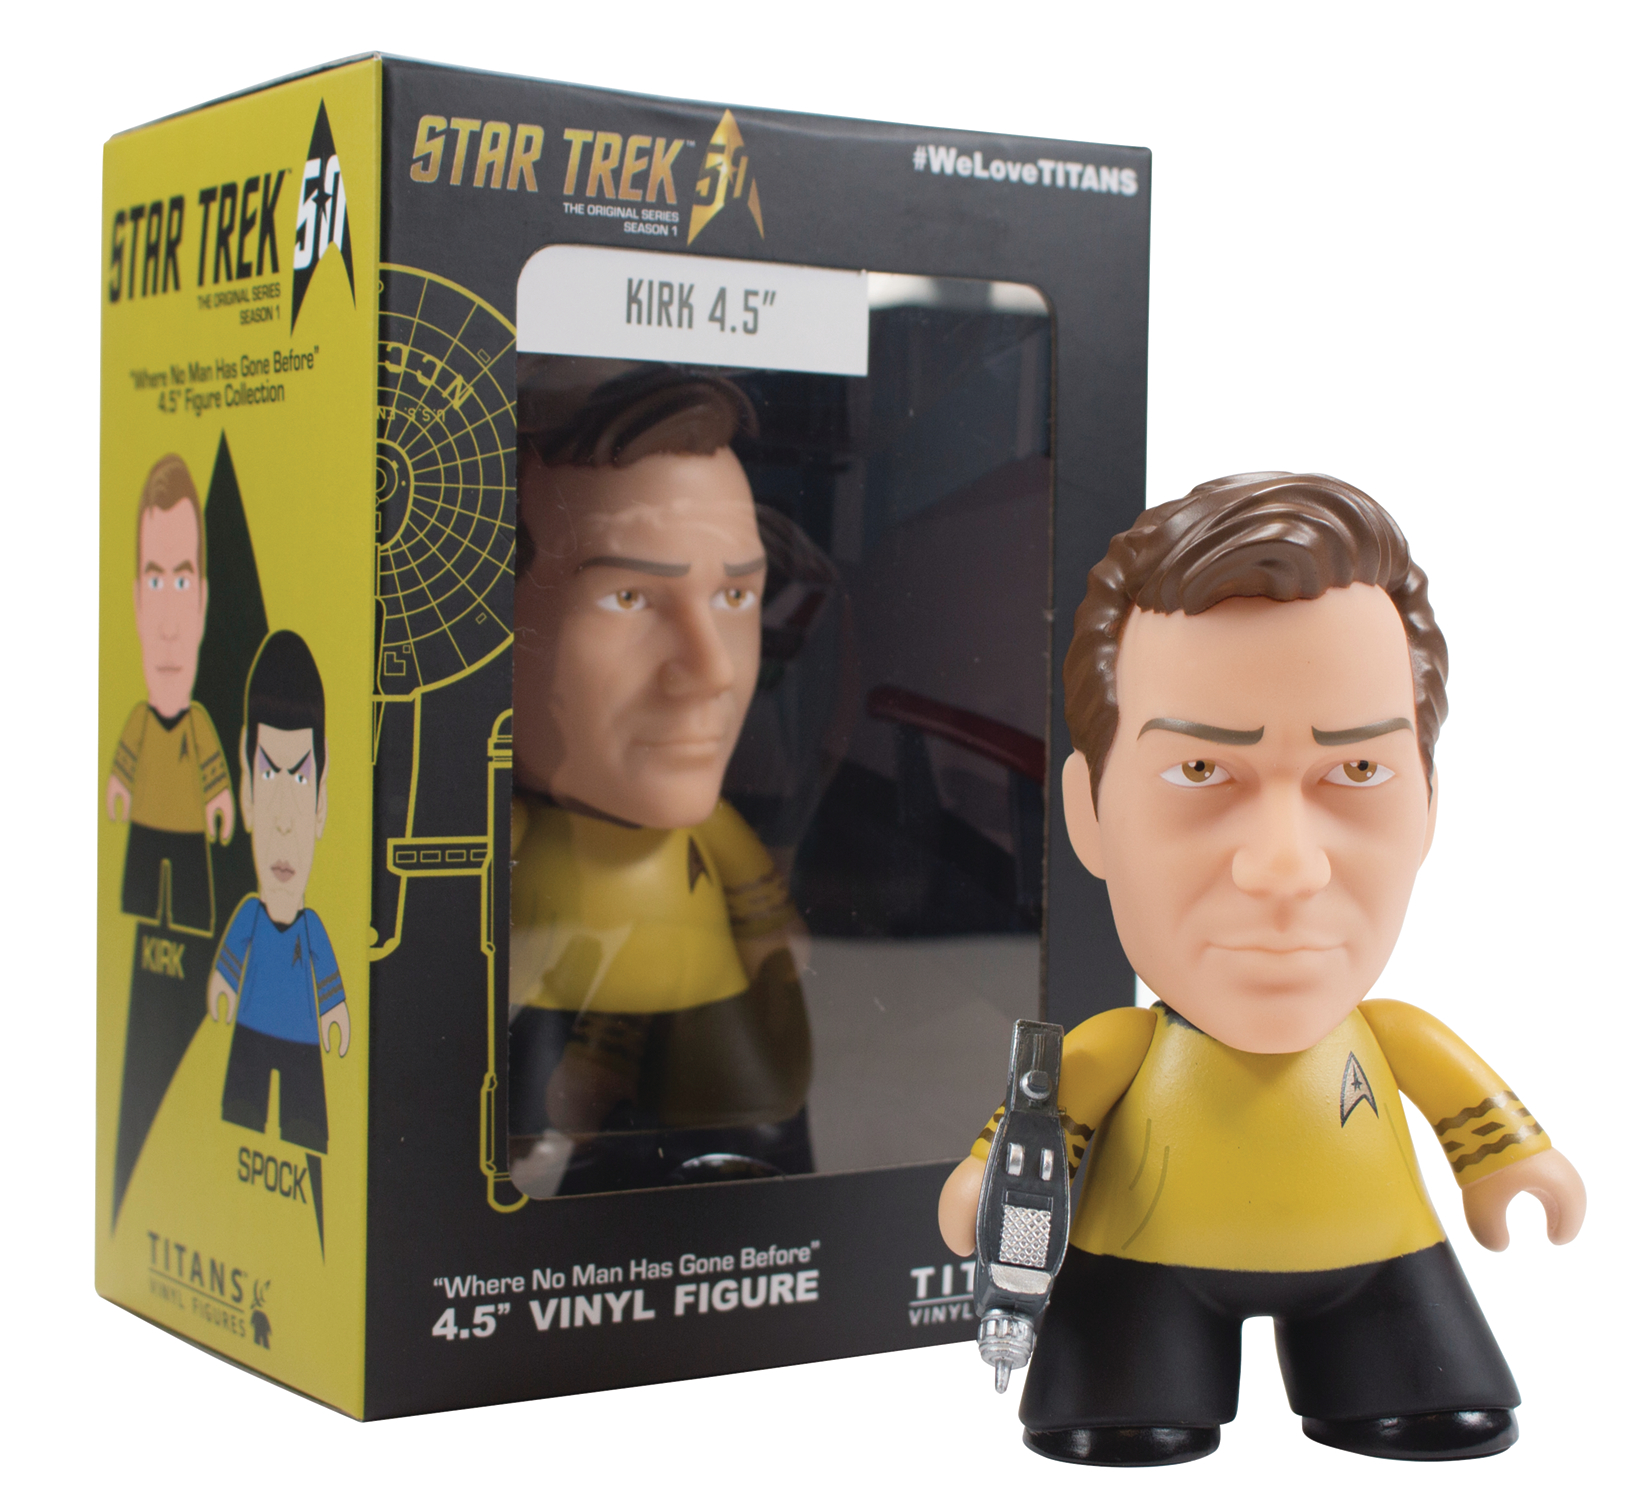 NYCC 2016 EXCL STAR TREK TOS TITANS KIRK 4.5IN VIN FIG